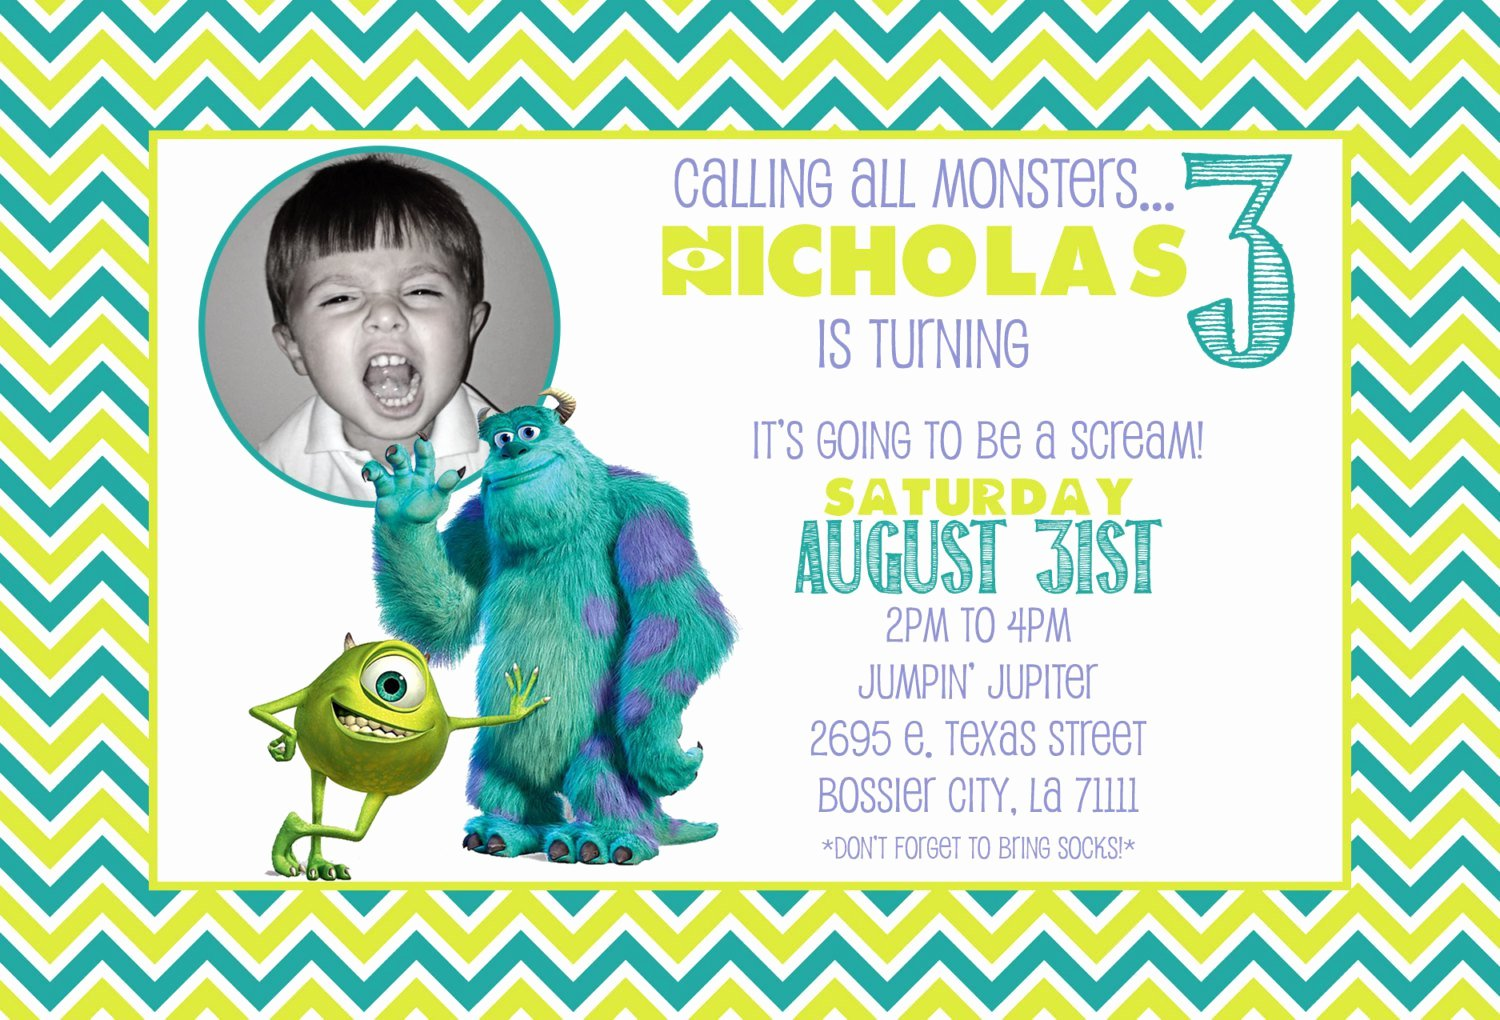 Free Monsters Inc Invitation Template Lovely Monsters Inc 1st Birthday Invitations